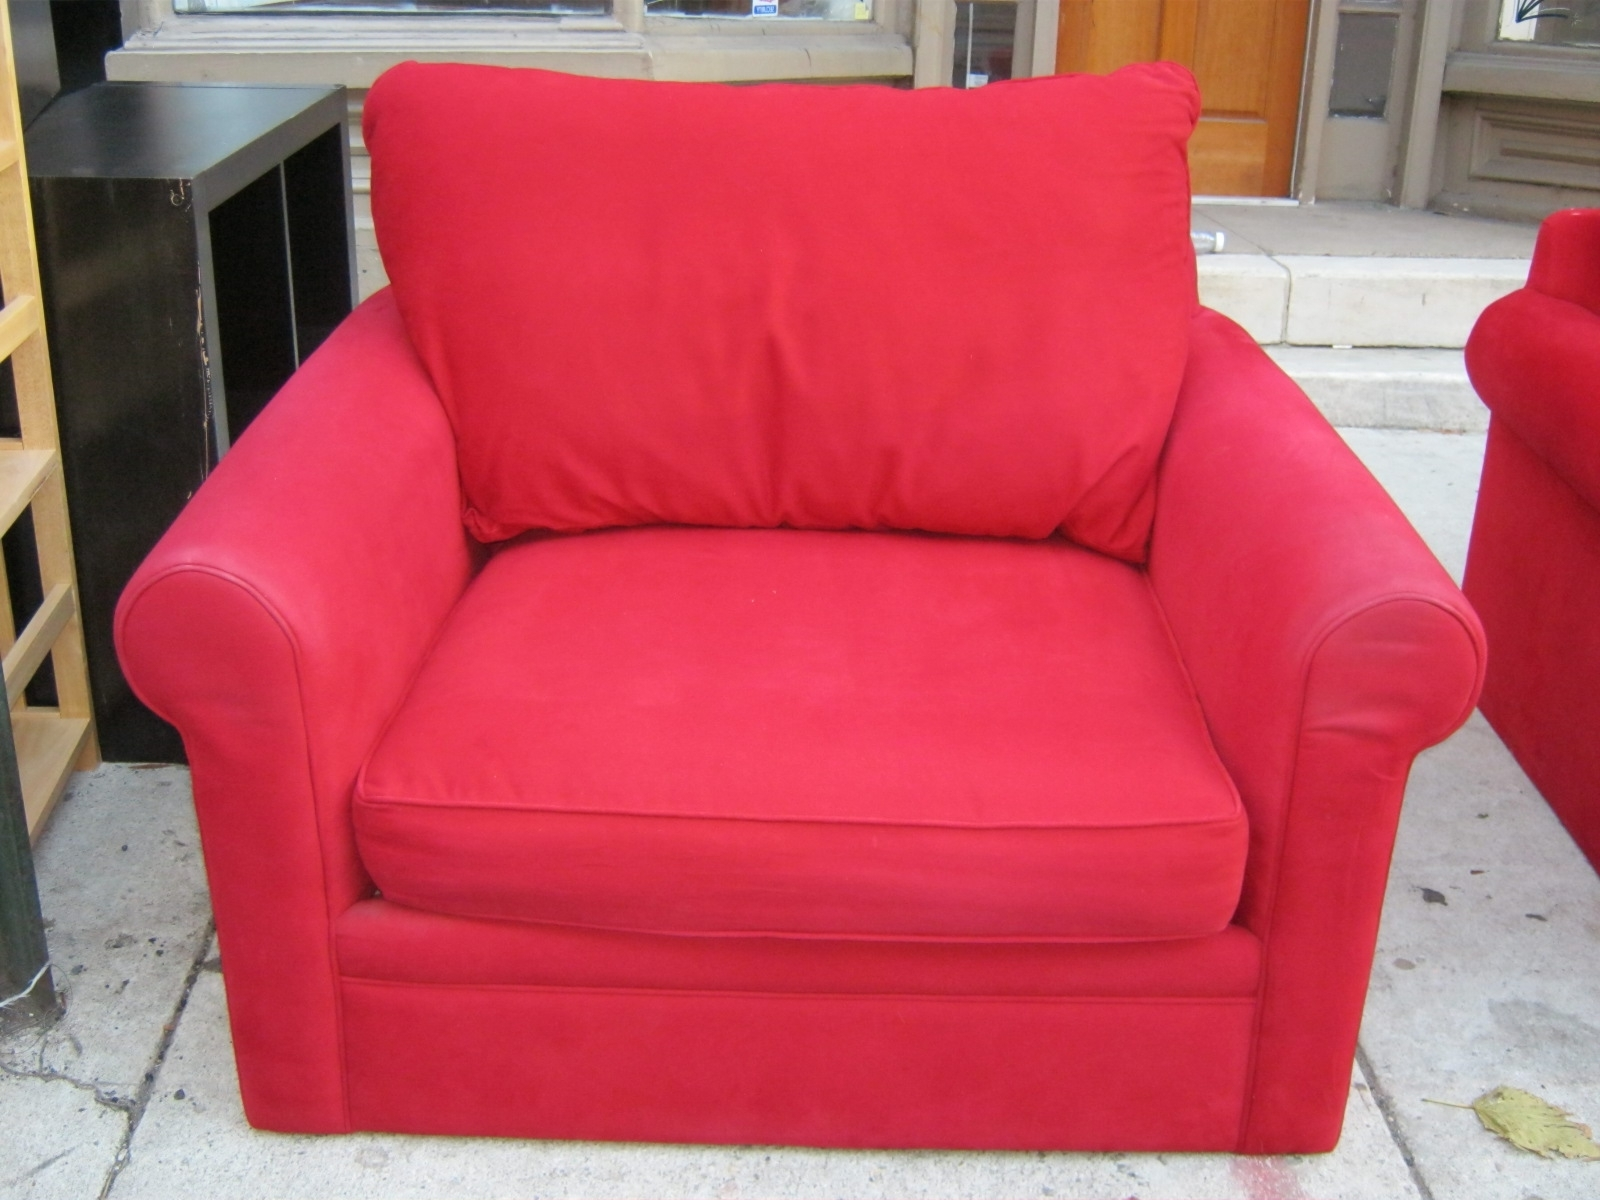 2019 Red Sofa Chairs Regarding Uhuru Furniture & Collectibles: Red Sofa Chair And Ottoman Set Sold (View 1 of 20)